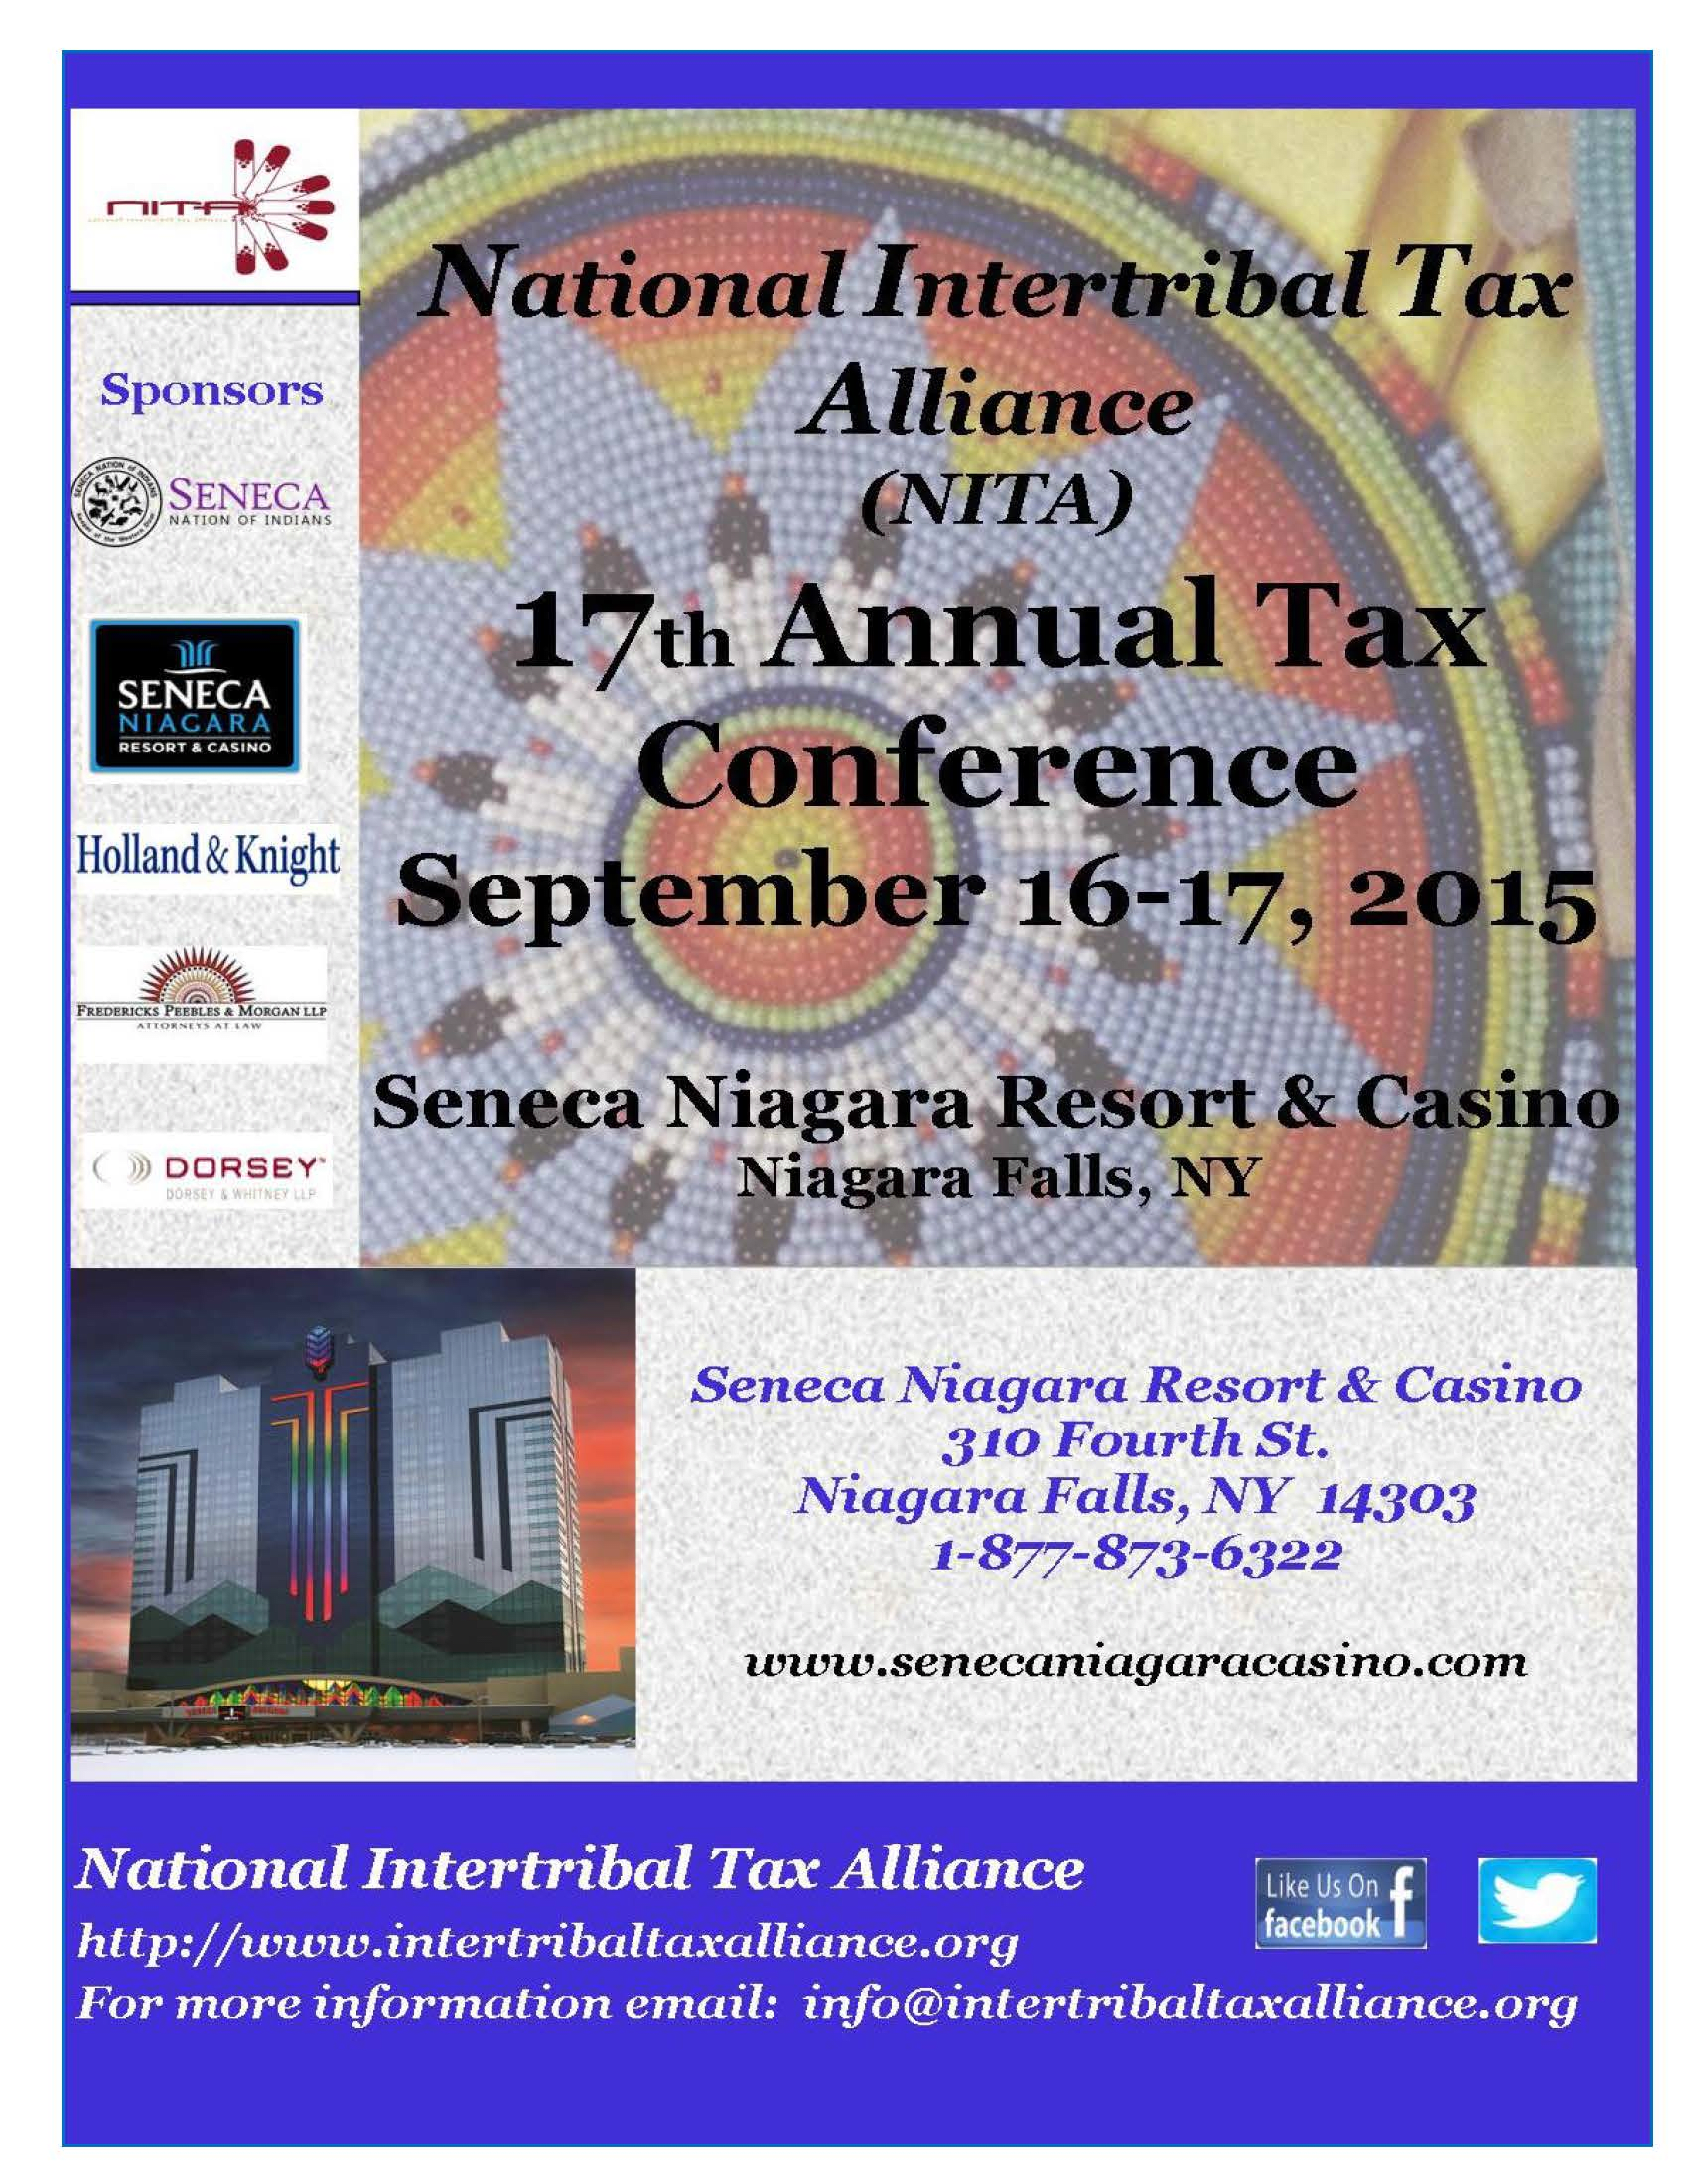 National Intertribal Tax Alliance (NITA) Annual Tax Conference